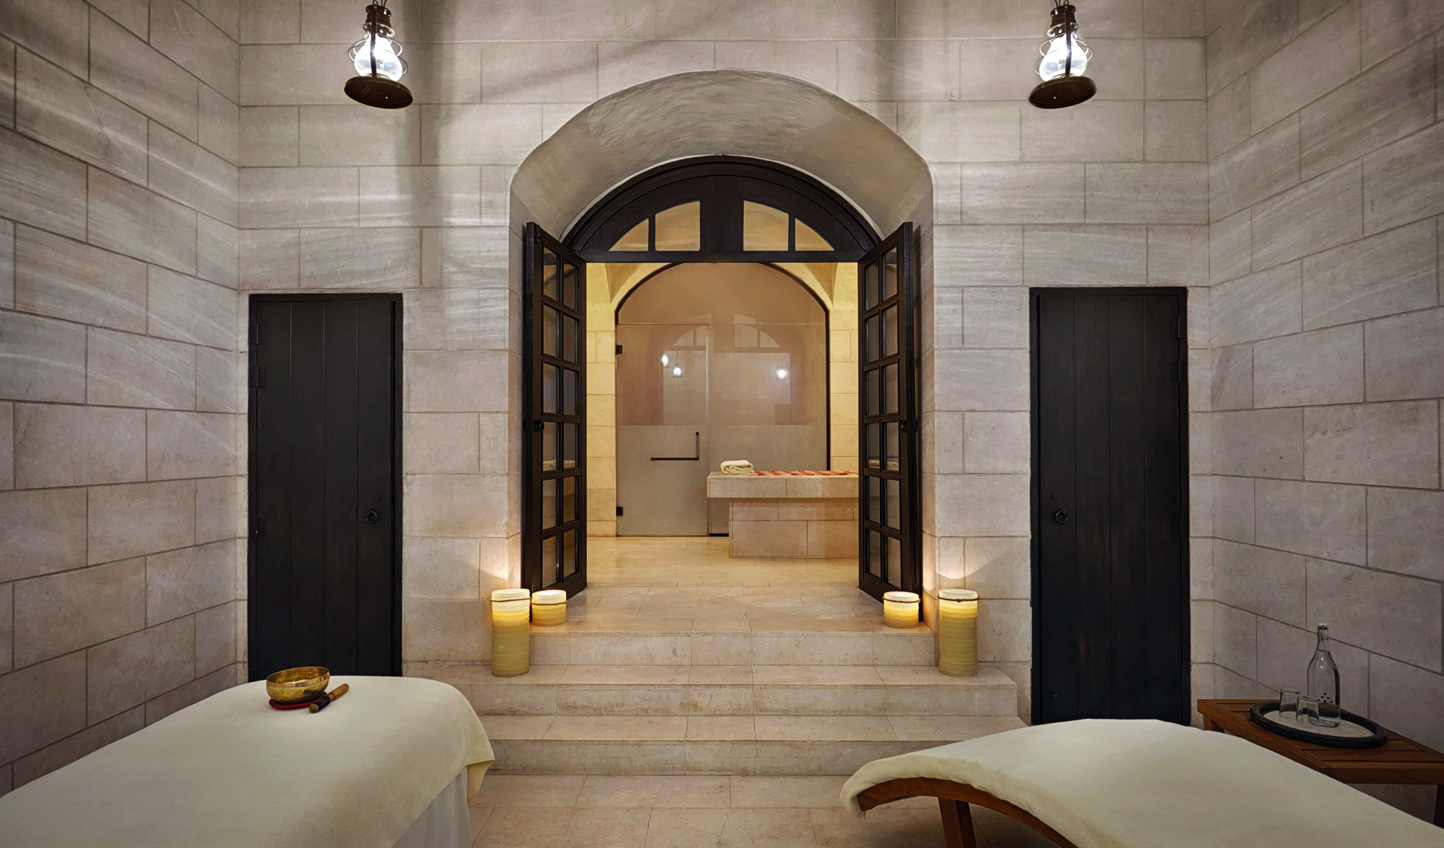 Indulge in the ritual of Hammam at the Six Senses Spa